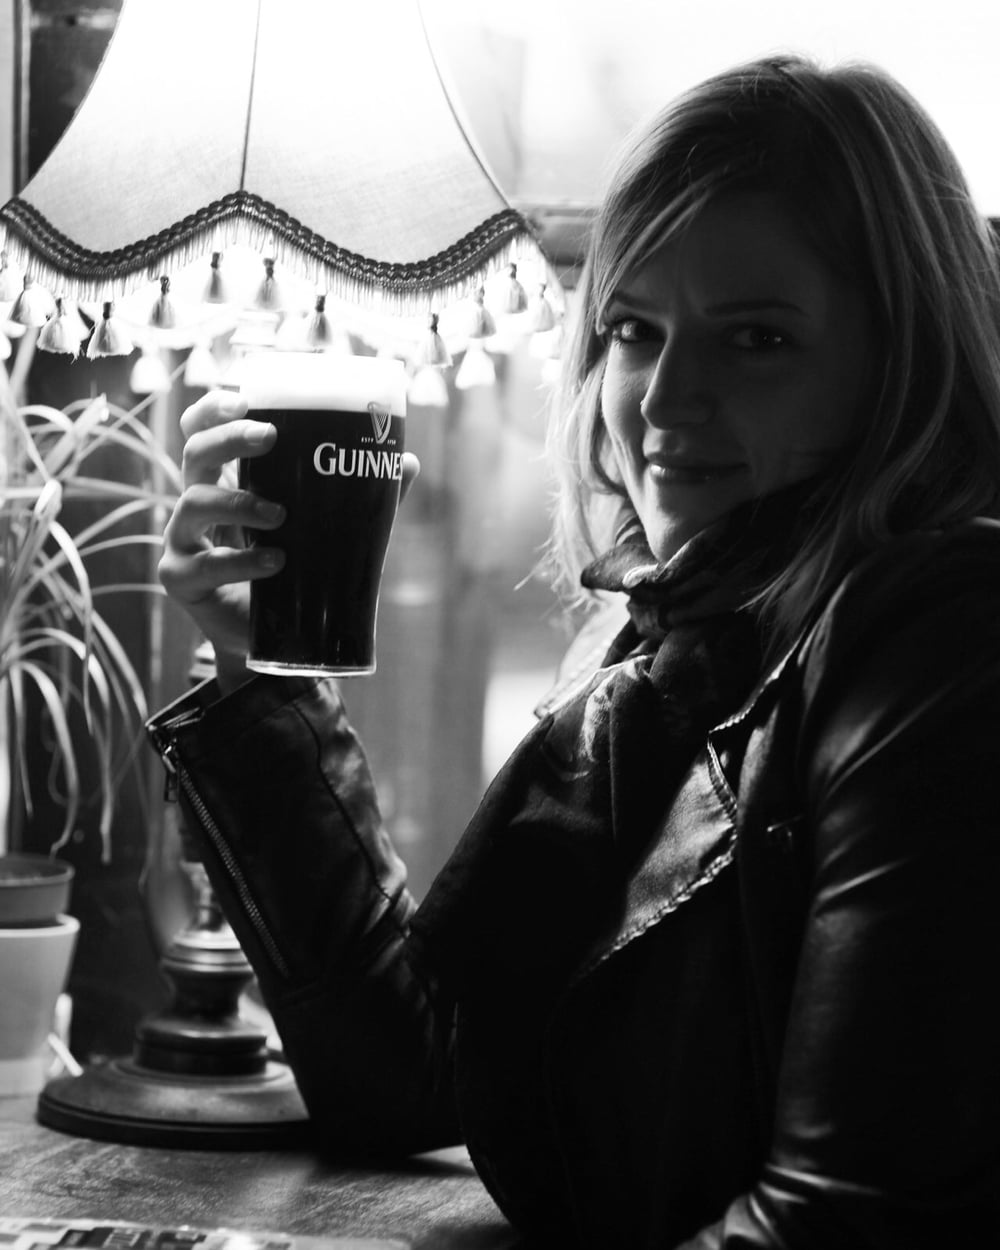 My first Guinness in Ireland. It was perfection.